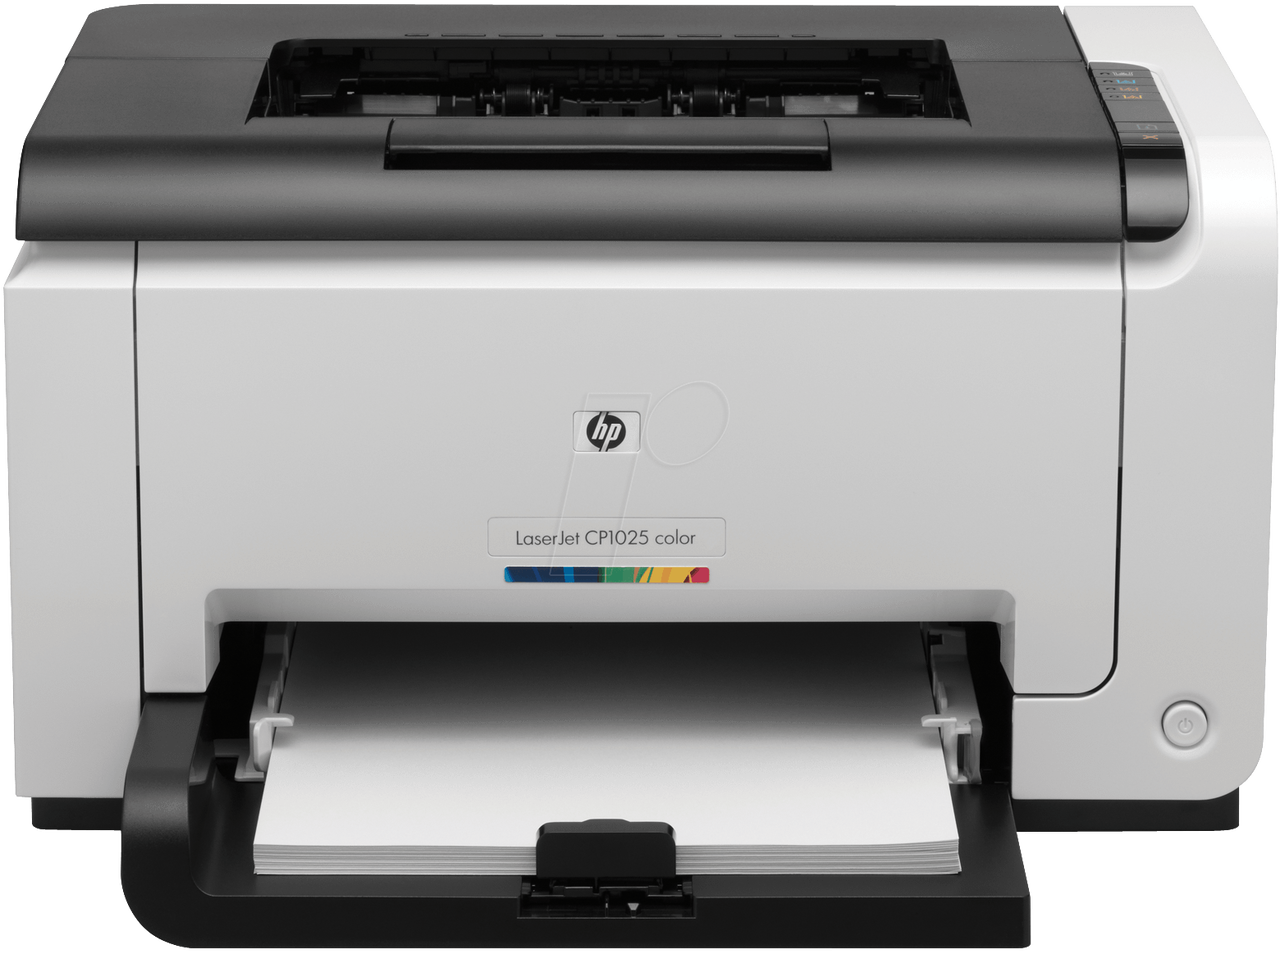 HP LaserJet Pro CP1025nw Wireless Color Printer (CE914A)